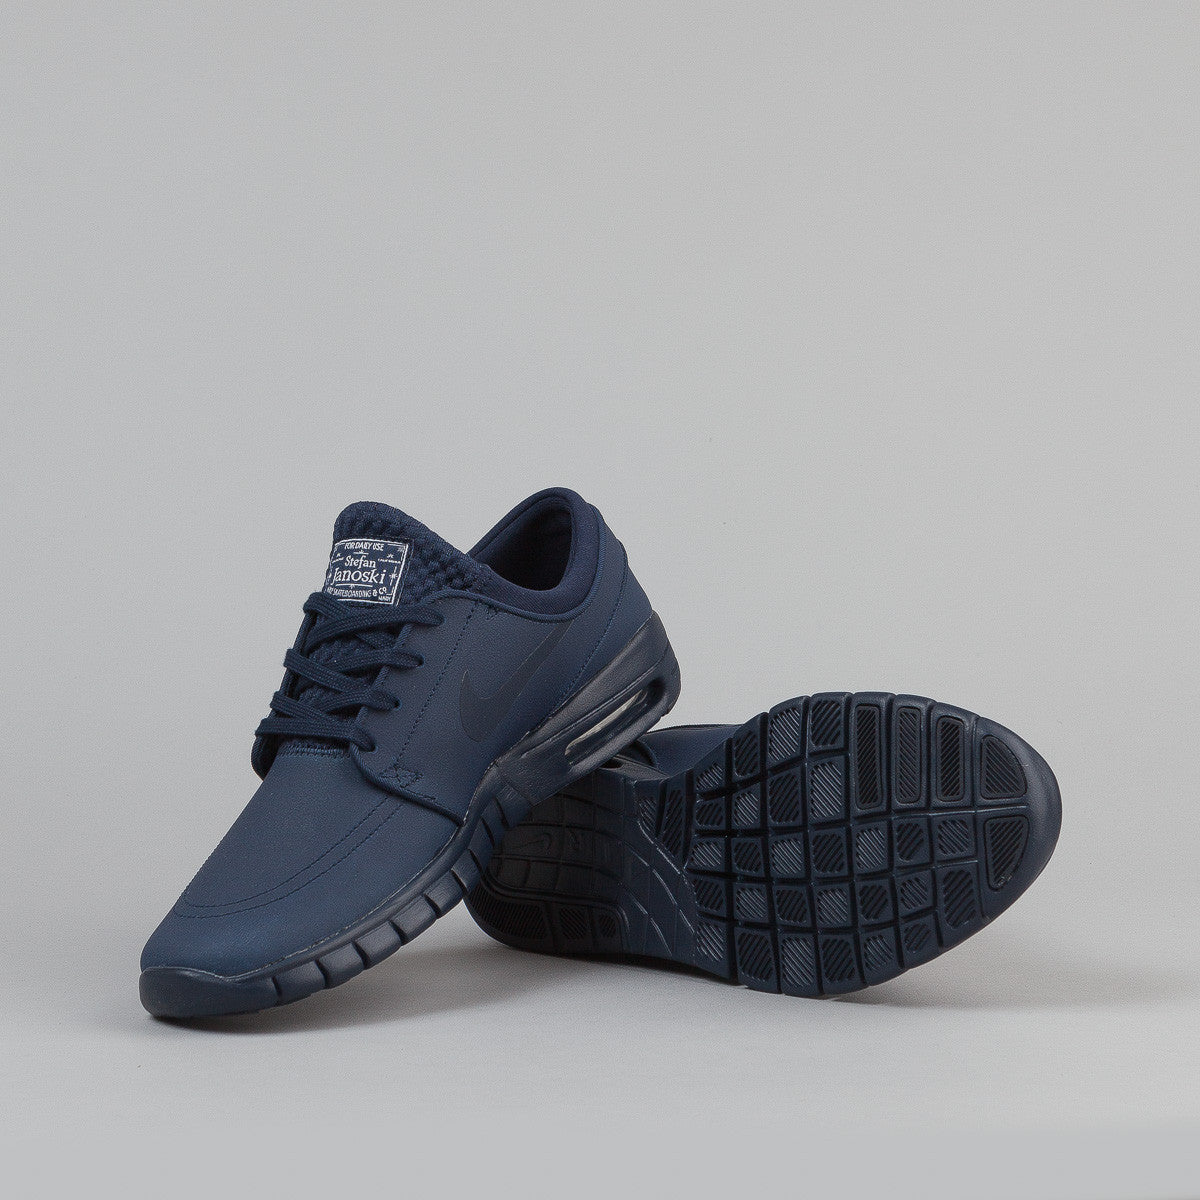 Nike SB Stefan Janoski Max Leather Shoes - Obsidian / Obsidian - White